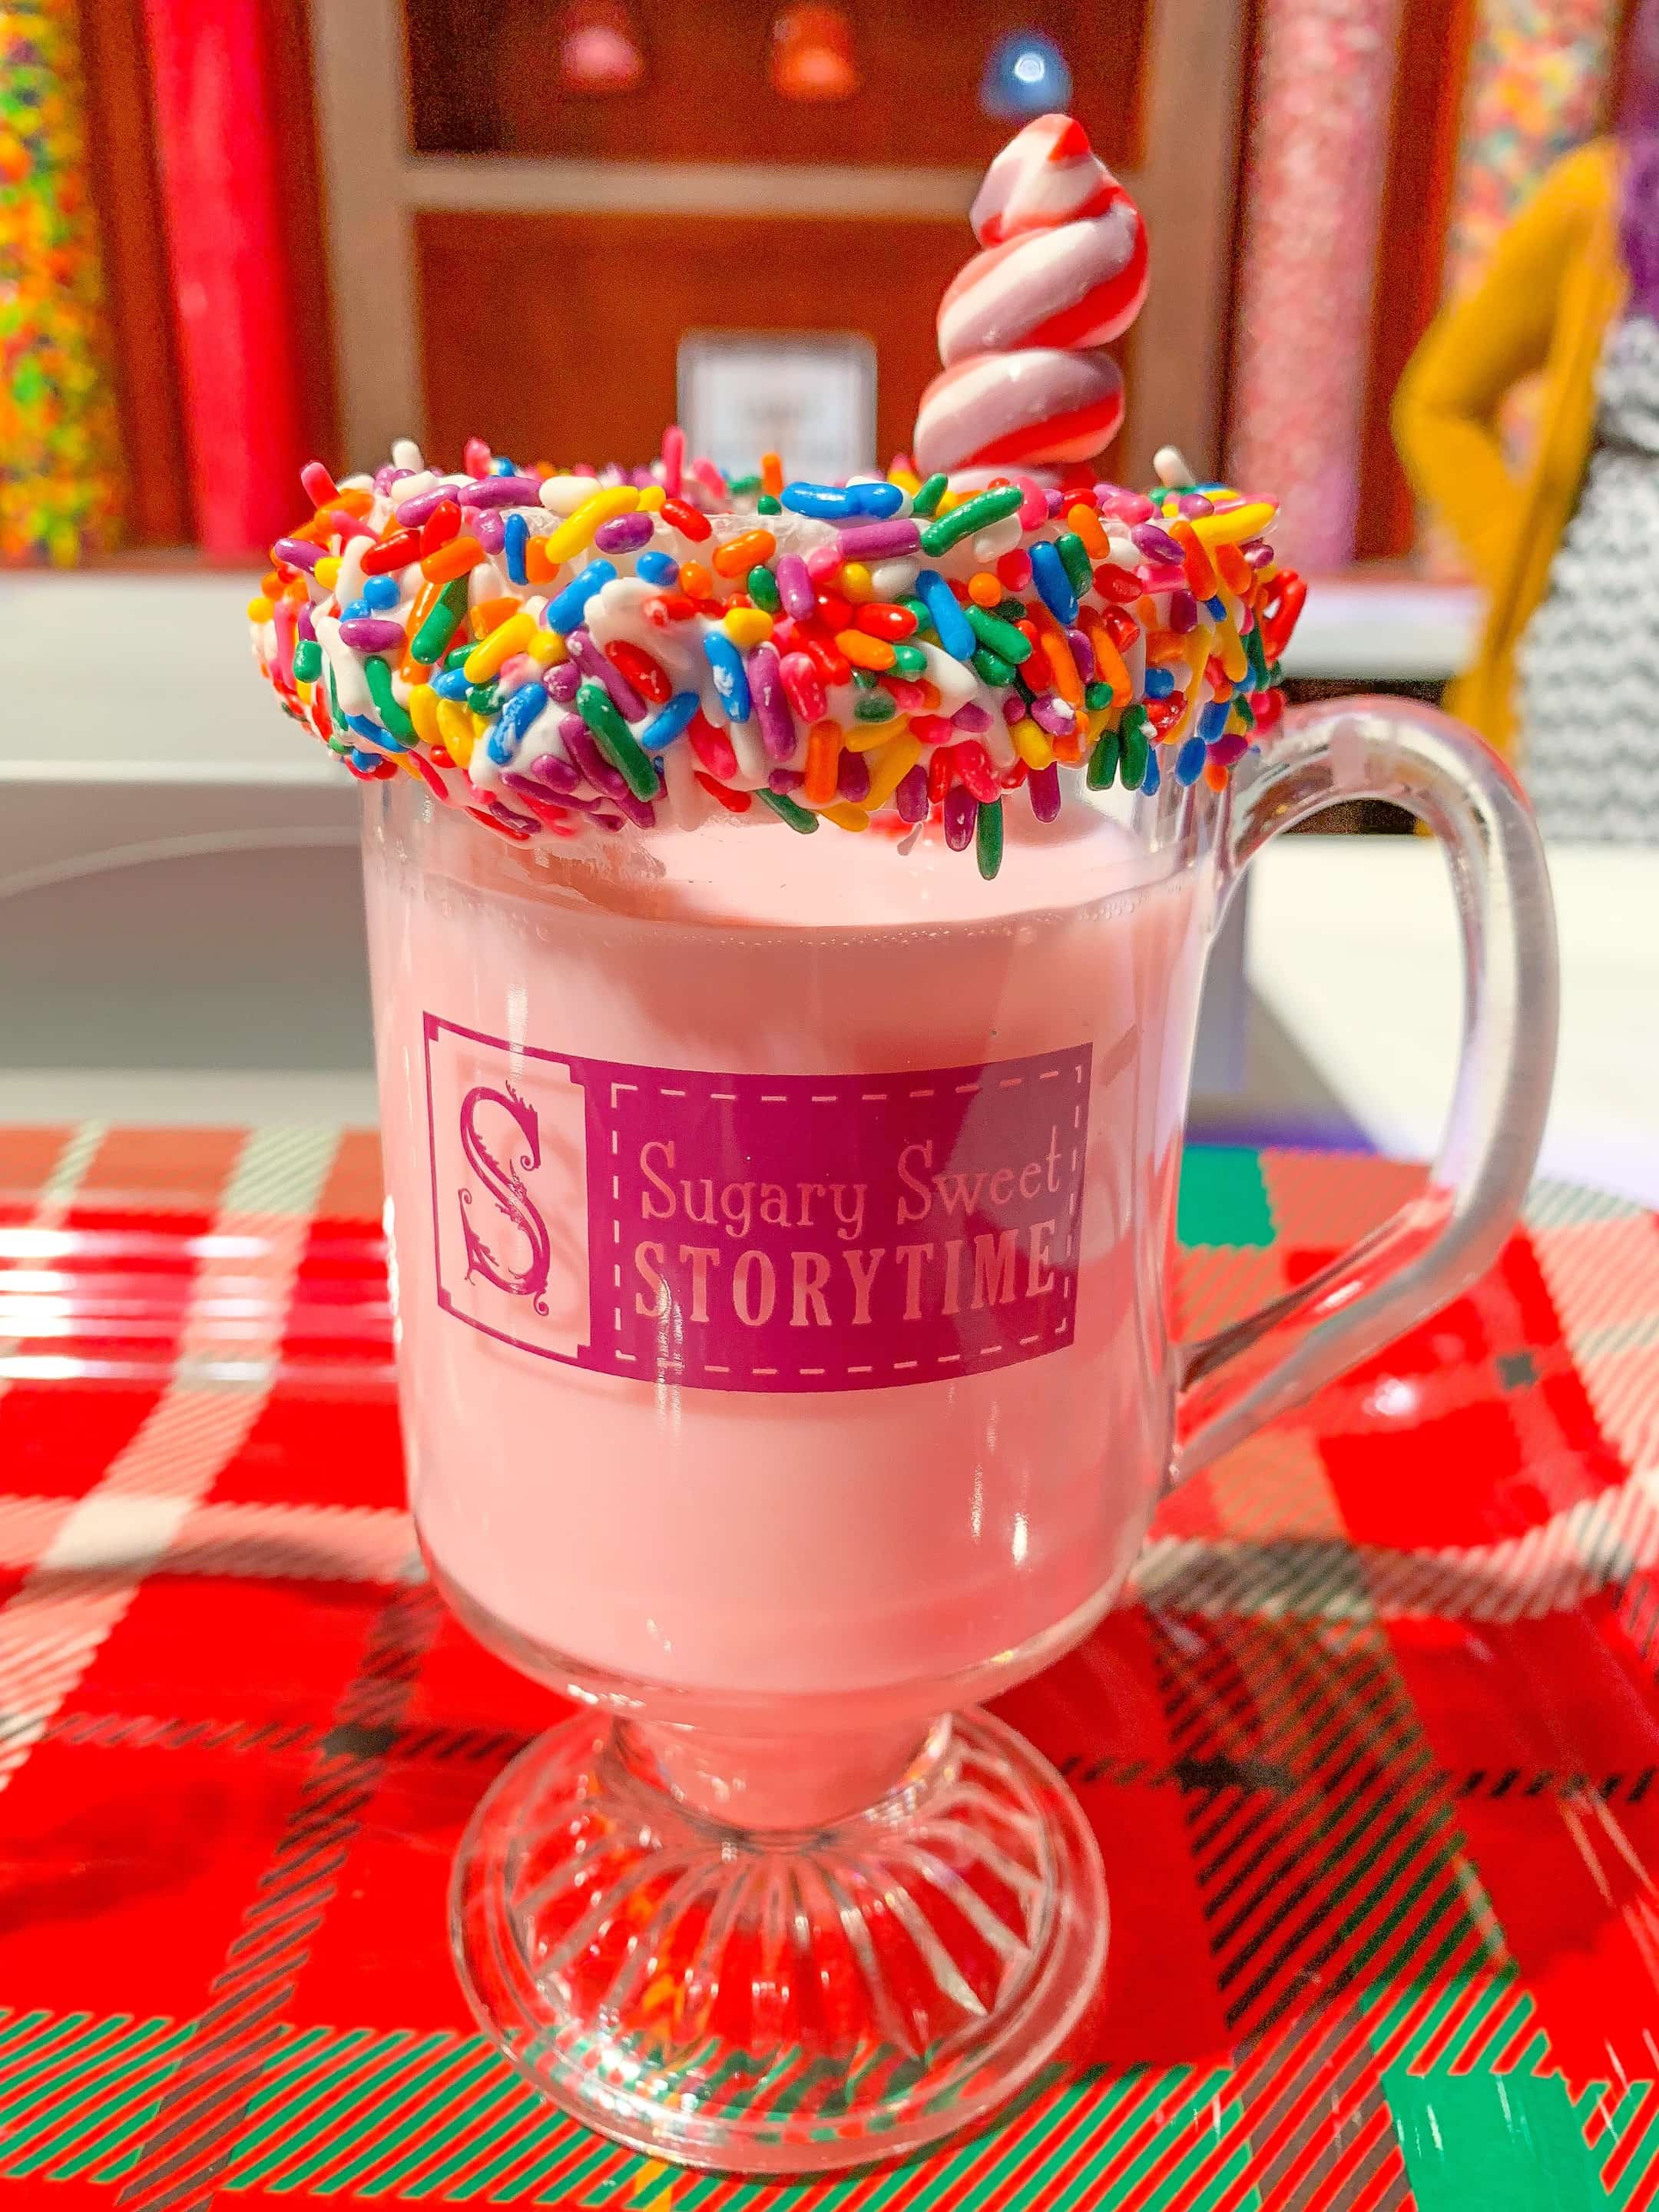 pink hot chocolate in glass mug with sprinkles on rim Gaylord Palms ICE 2018 Orlando